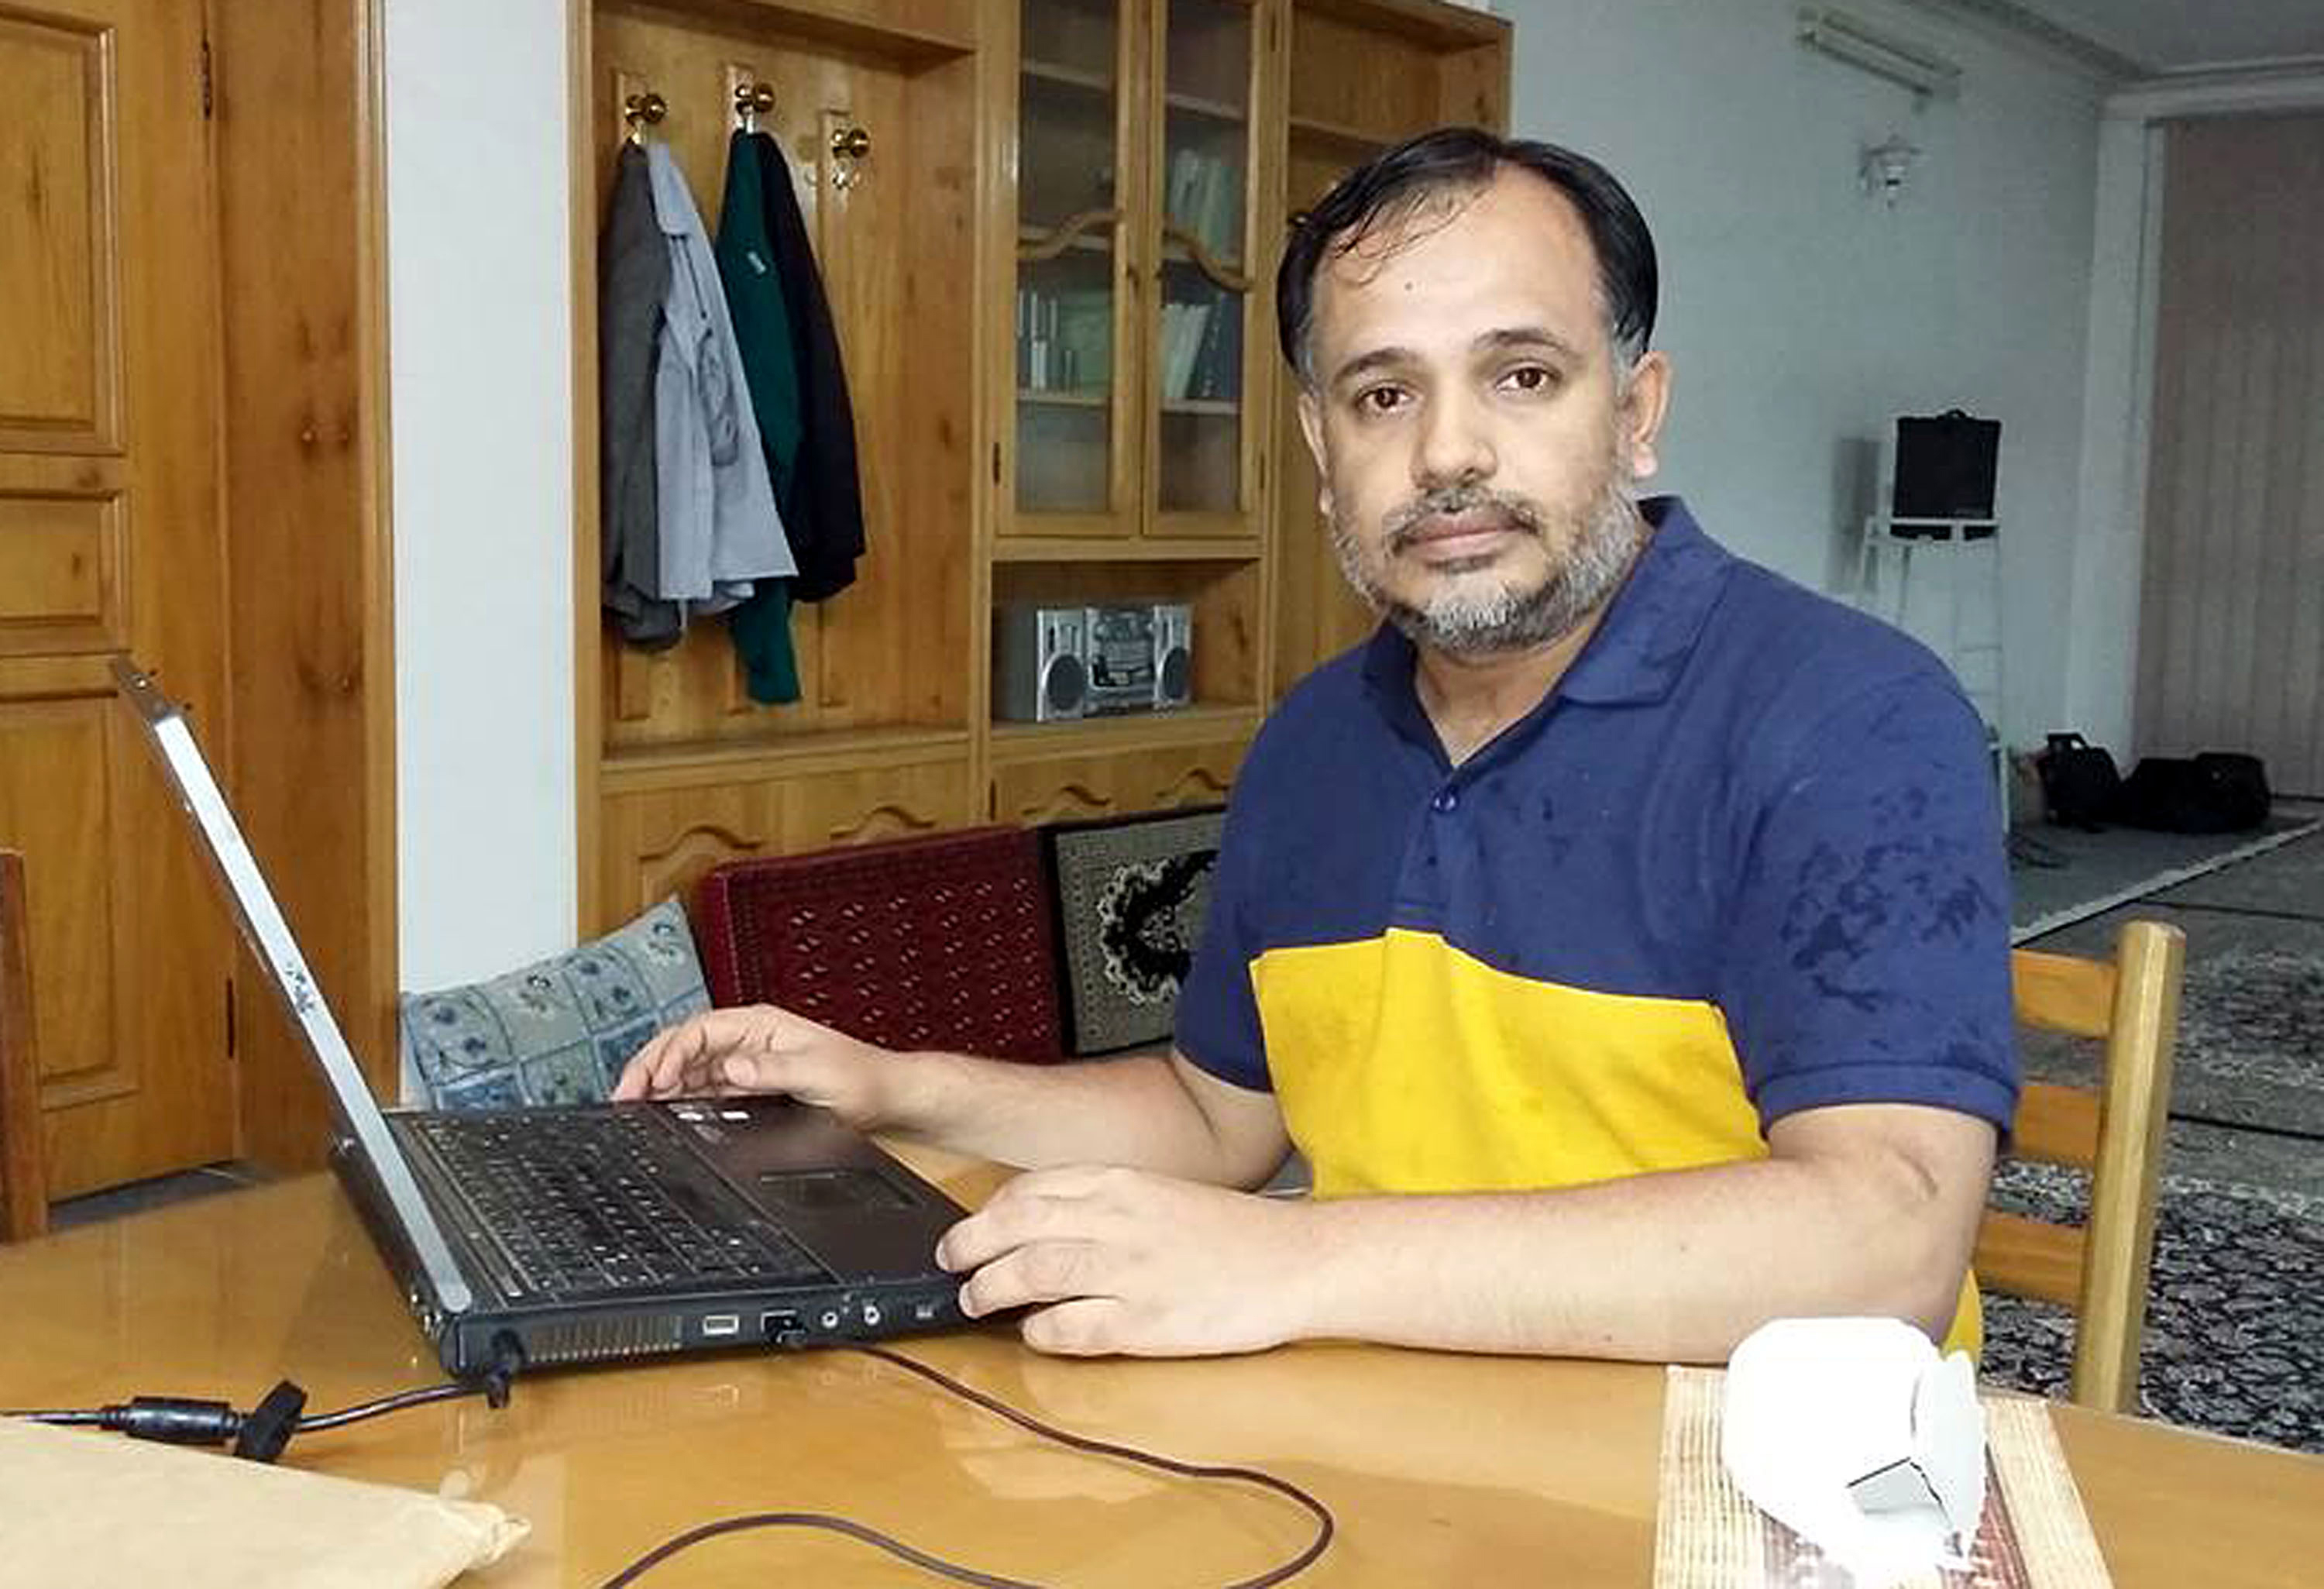 An undated handout picture released by Khurram Zaki's family shows him in Pakistan. Zaki, an active campaigner against radical Muslim clerics, was killed by unknown gunmen in Karachi on May 7, 2016